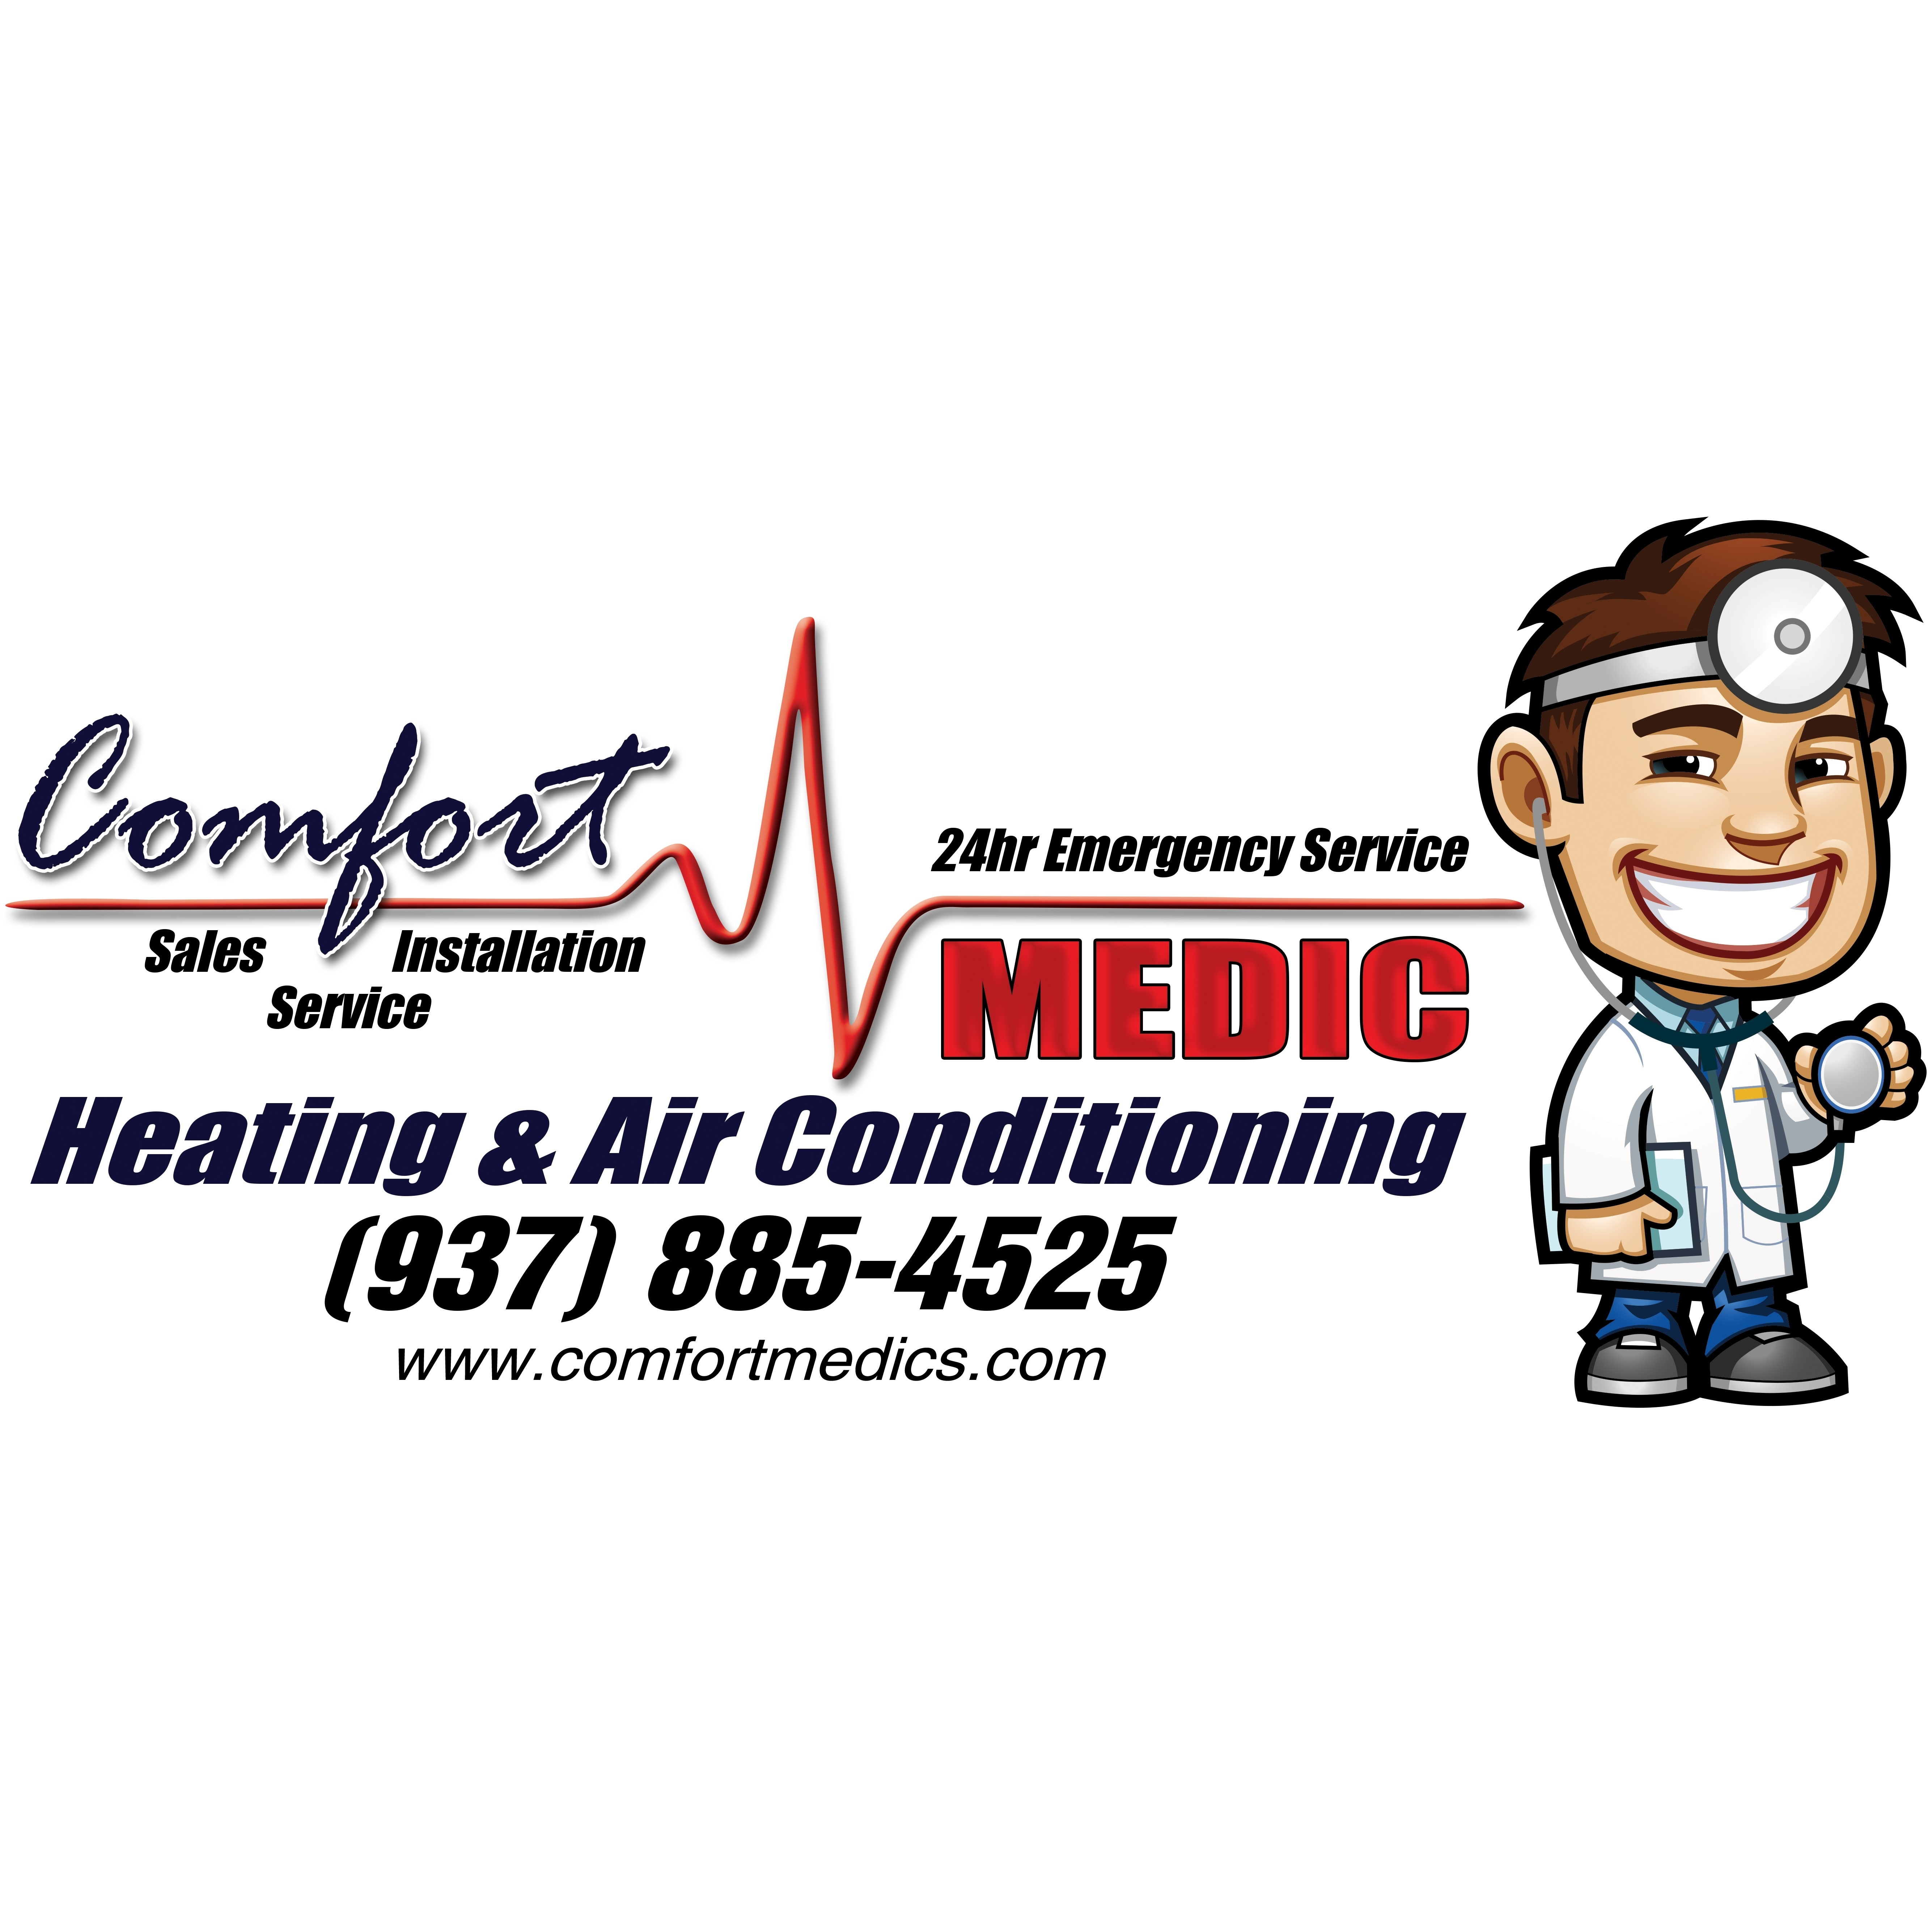 Comfort MEDIC Heating & Air Conditioning - Dayton, OH - Heating & Air Conditioning